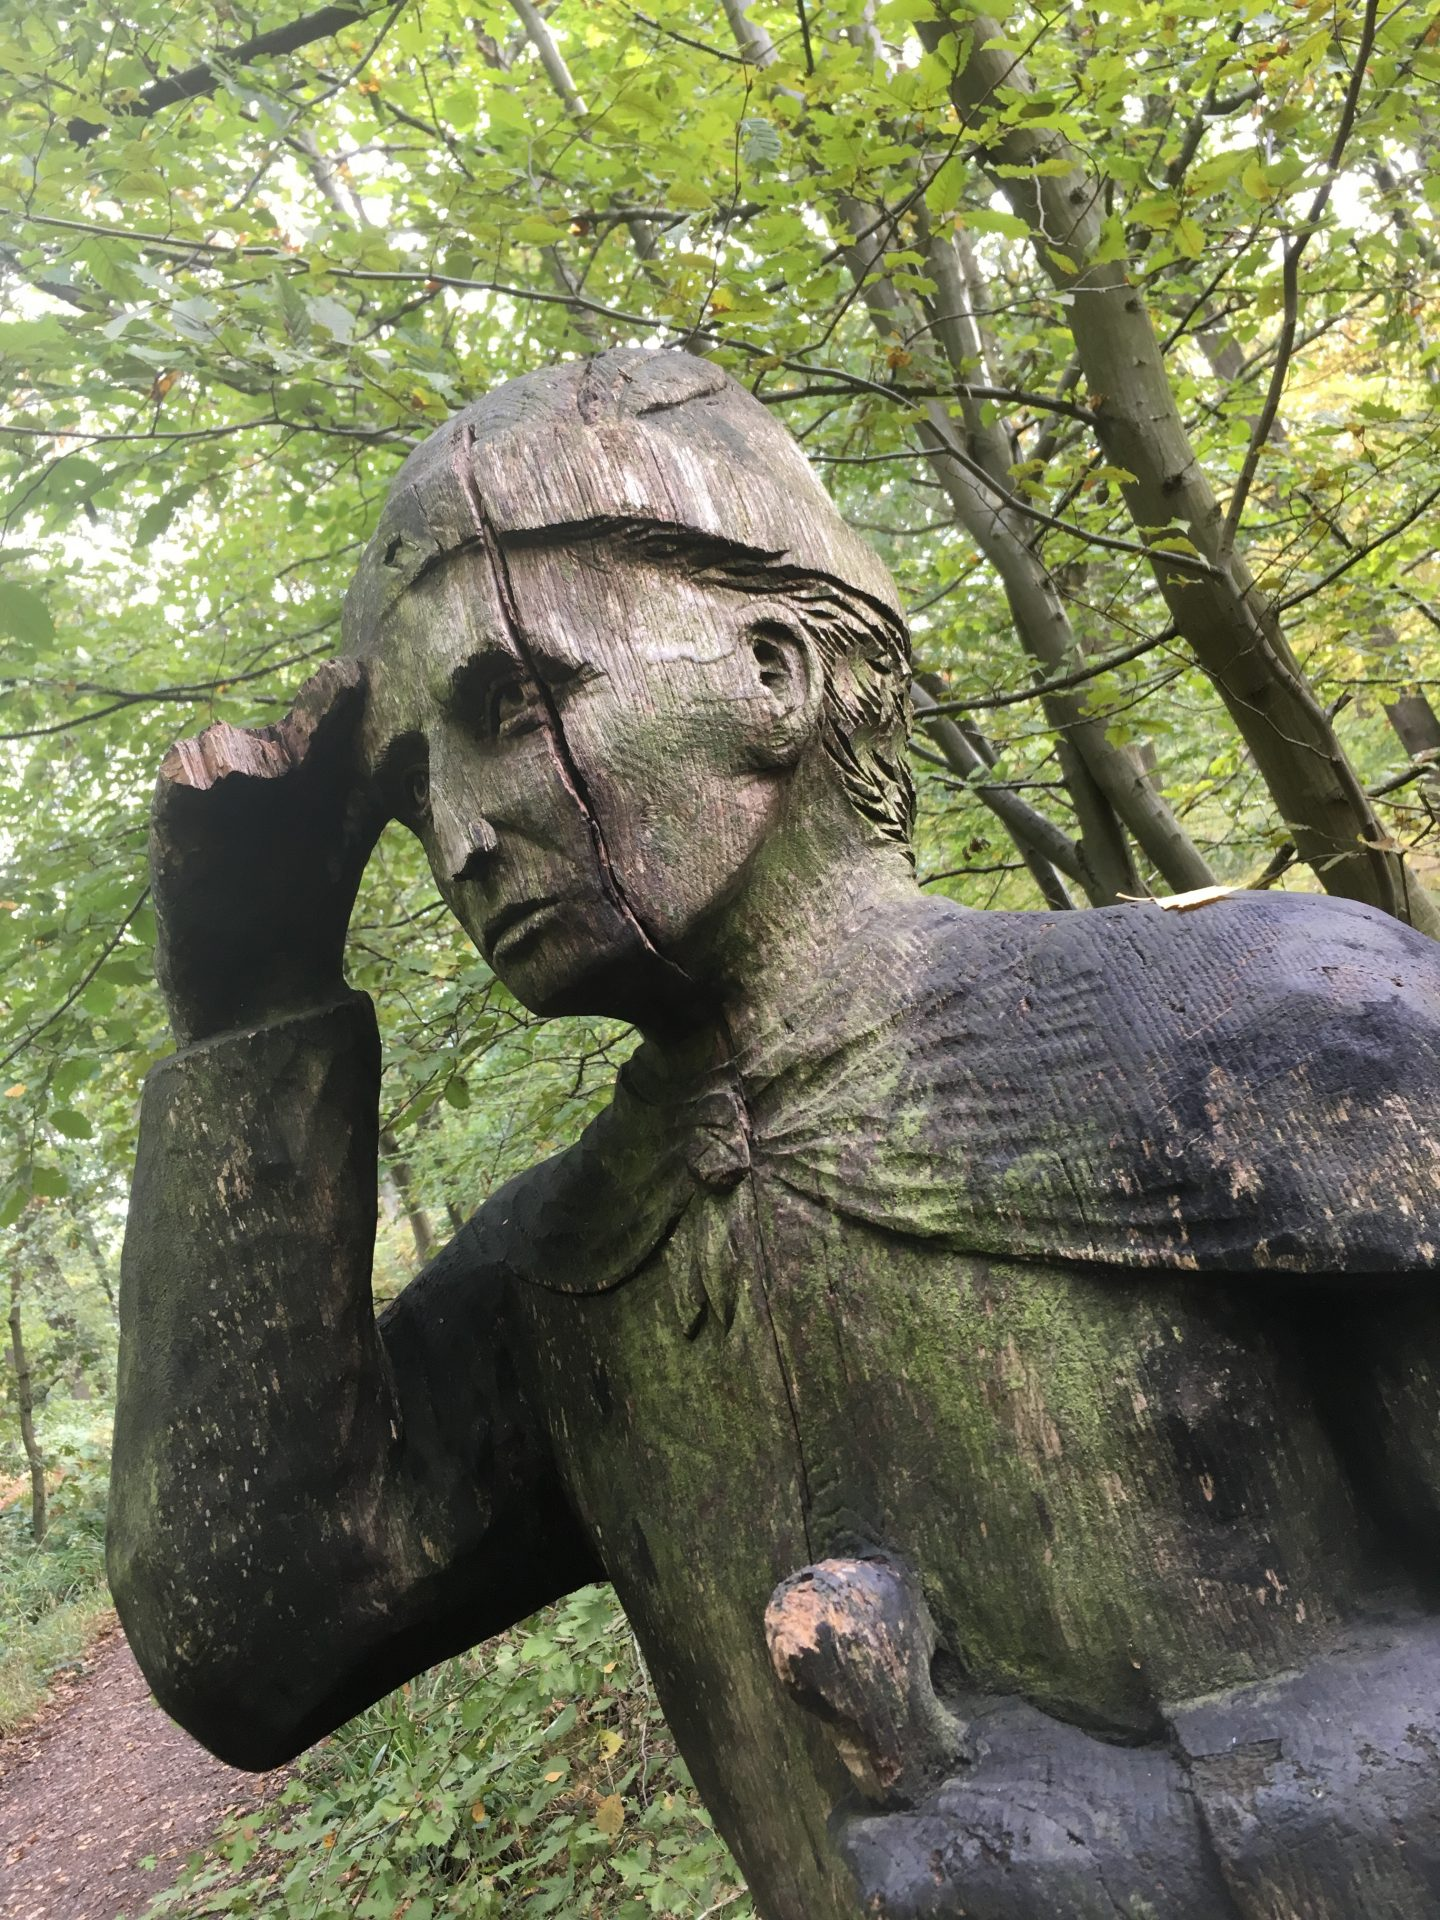 Herdsman searching for his cattle at Broxbourne Woods Sculpture Trail